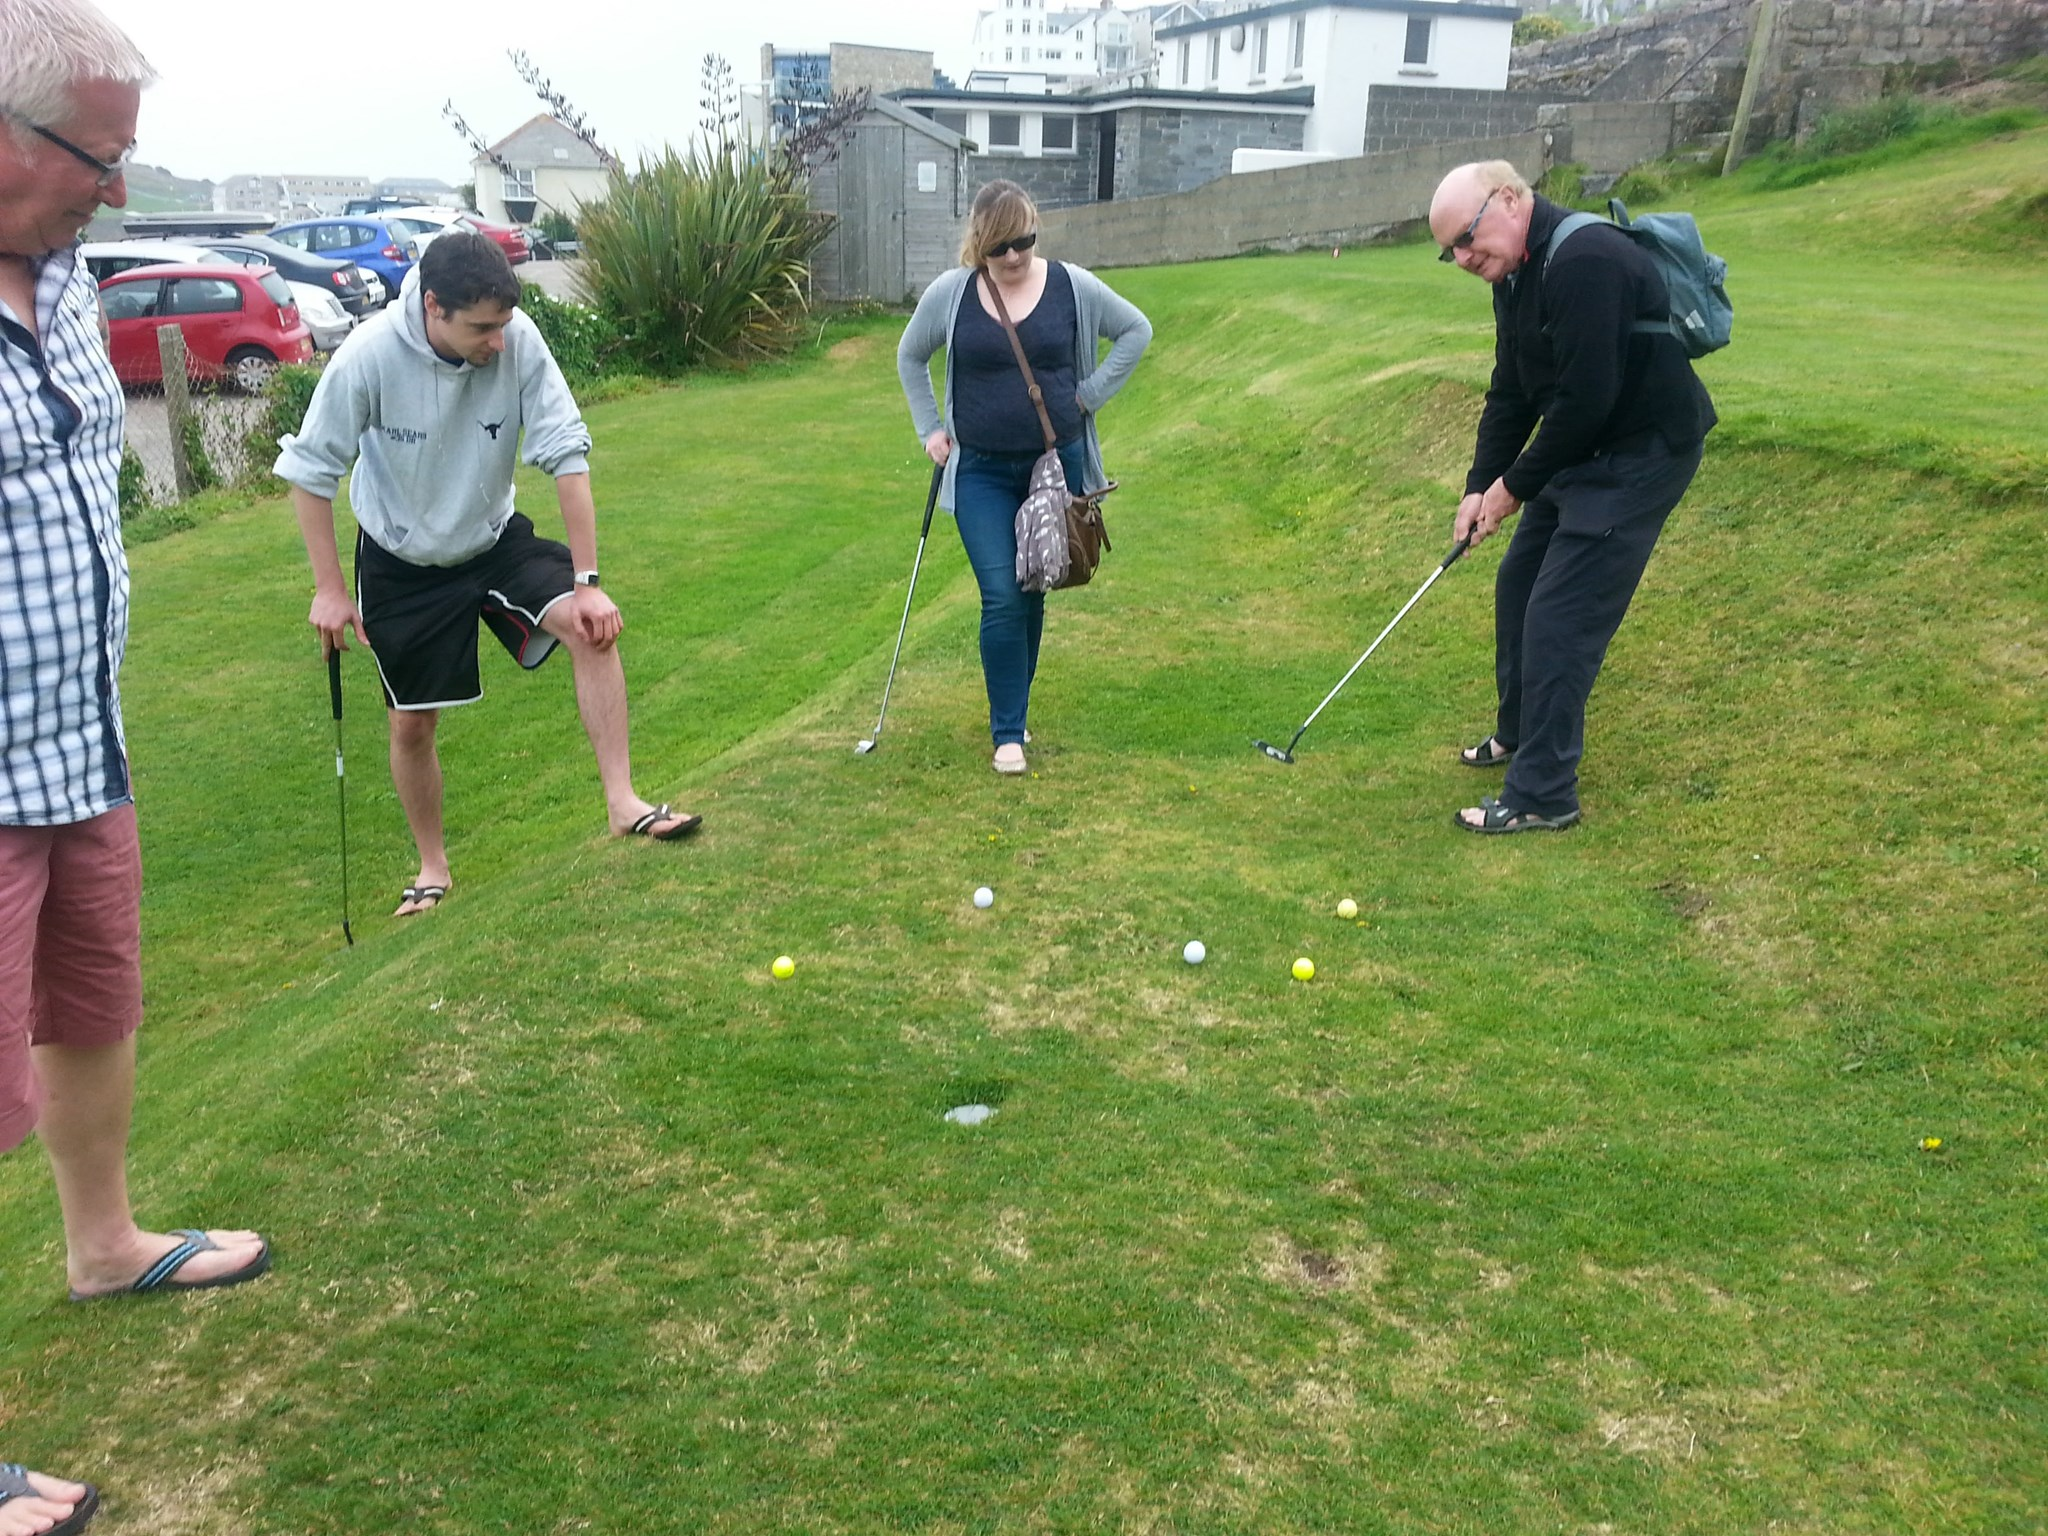 A wonderful hole in one, cornwall 2014 .Always the keen competitor.